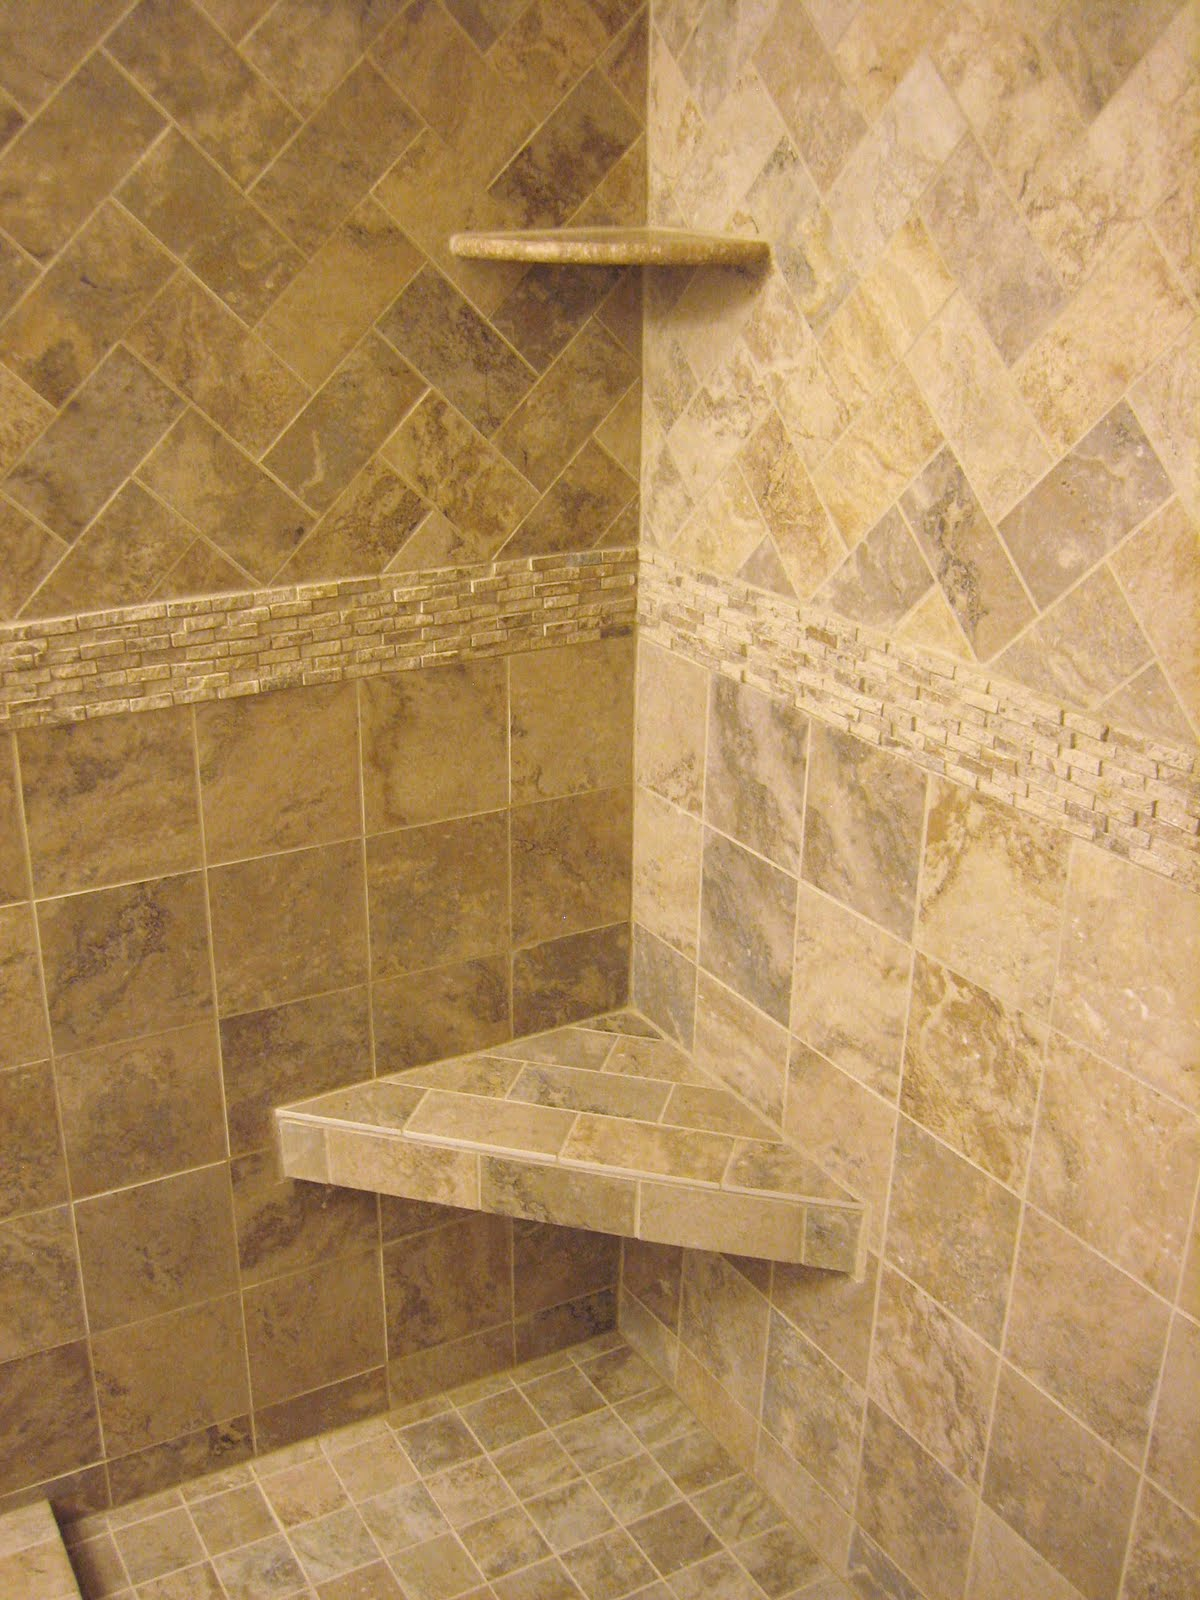 33 amazing pictures and ideas of old fashioned bathroom floor tile on corner bathroom vanities for small bathrooms, corner bathroom cabinets online, corner bathroom shelving ideas, jack and jill bathroom design ideas, master bathroom remodeling ideas, bathroom cabinets design ideas, corner door ideas, corner bathroom cabinets and mirrors, corner coat rack ideas, corner bathroom counter organizer, corner medicine cabinet, corner bathroom countertop ideas, corner storage cabinet, corner lazy susan ideas, corner linen cabinet, corner cabinets for bathroom, corner bathroom vanity, corner dresser ideas, corner cabinet furniture, corner bathroom storage,